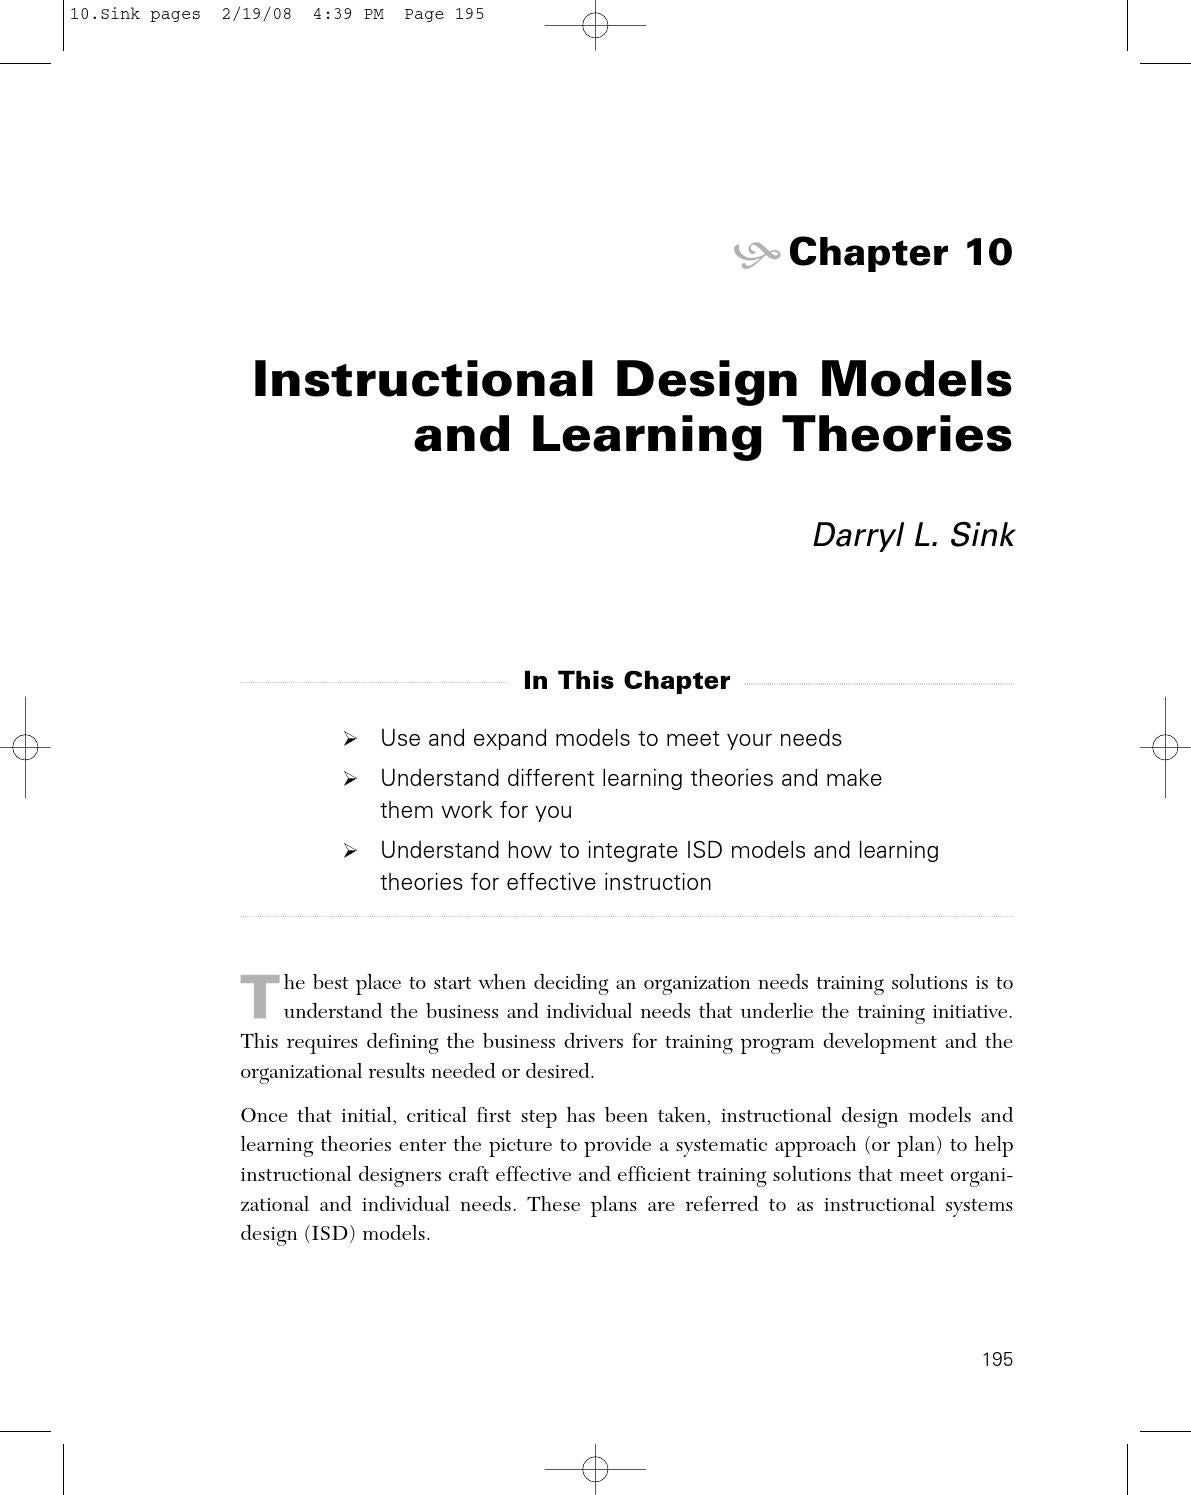 Instructional Design Models And Learning Theories By Universidad Da Vinci Issuu